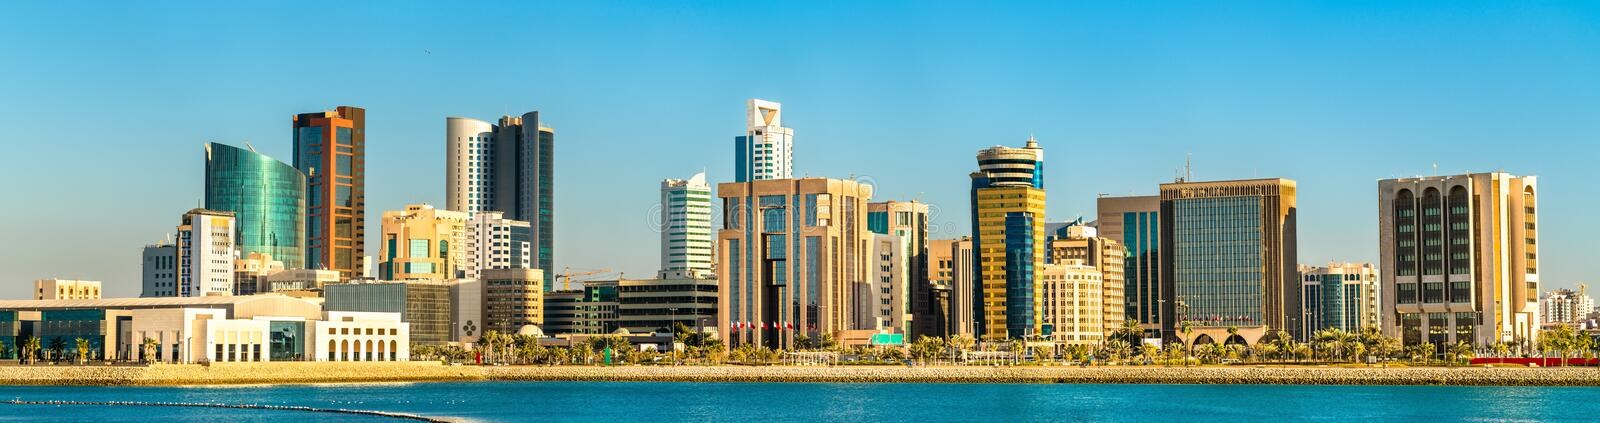 Skyline of Manama Central Business District. The Kingdom of Bahrain. Skyline of Manama Central Business District. The capital of Bahrain royalty free stock photos